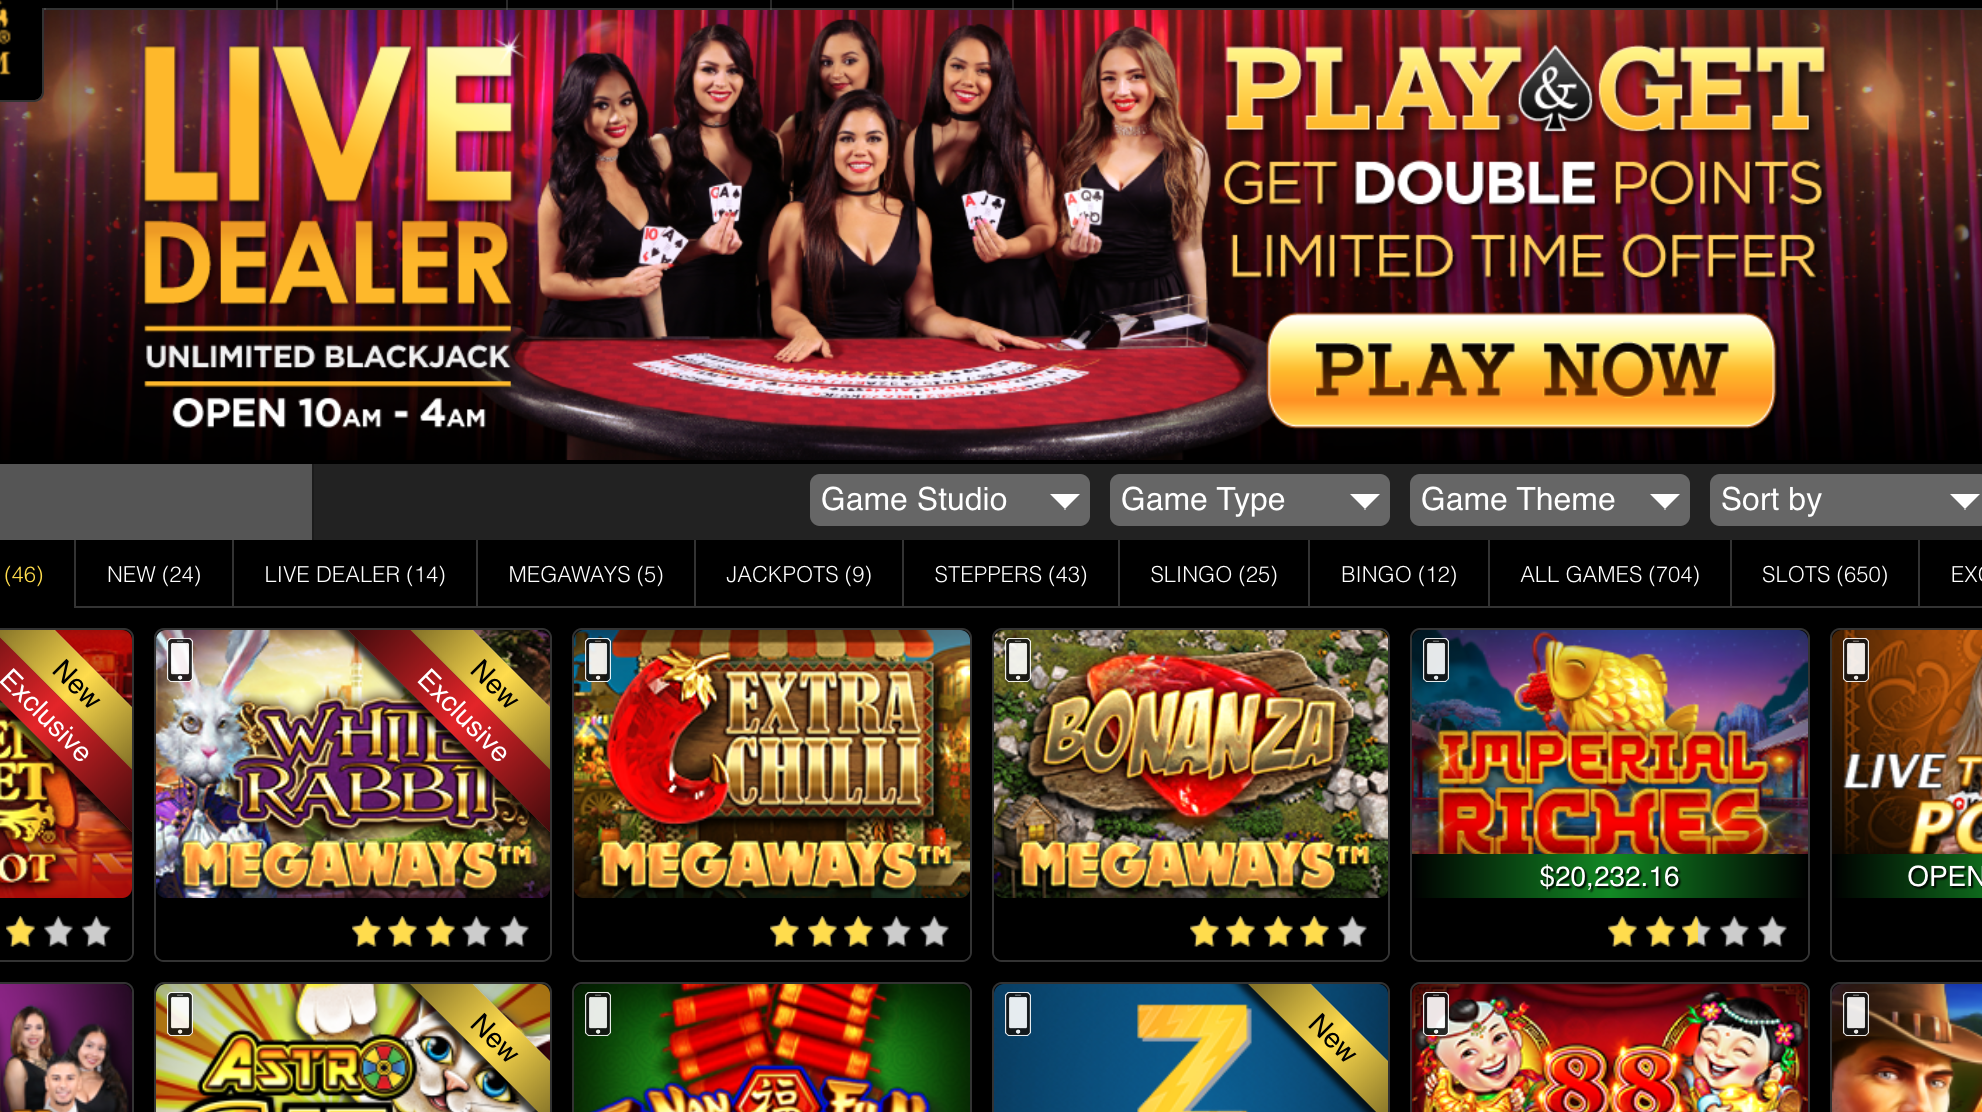 Golden Nugget Online Casino Offers 20% Cashback on Live Dealer Games